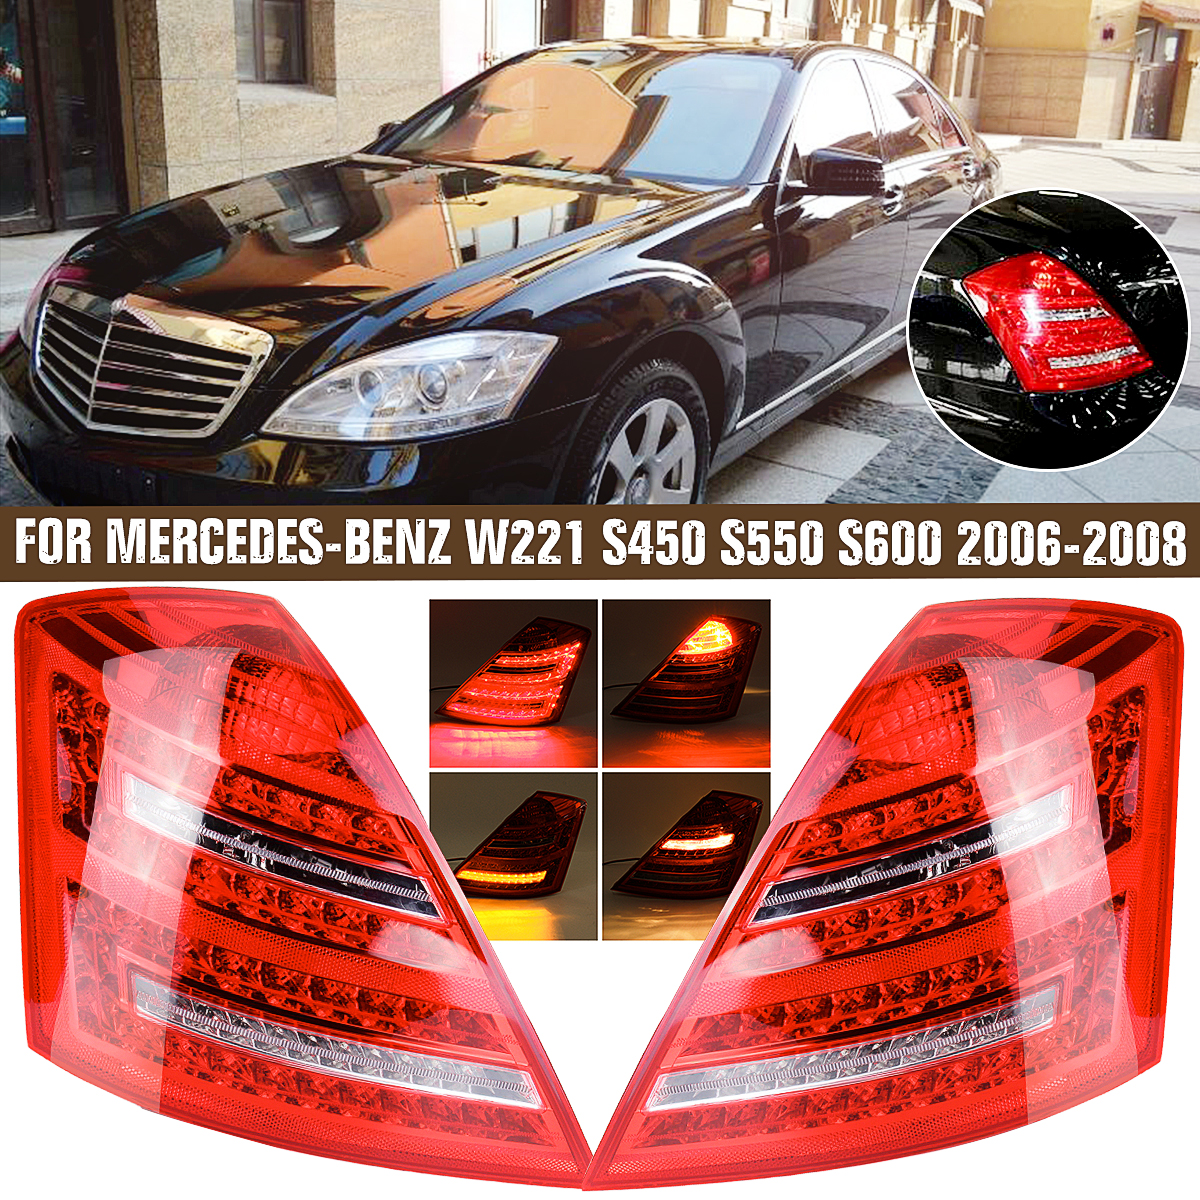 MB S-CLASS W221 2009-2013 NEW REAR TAIL LED LIGHT LAMP RIGHT O//S DRIVER